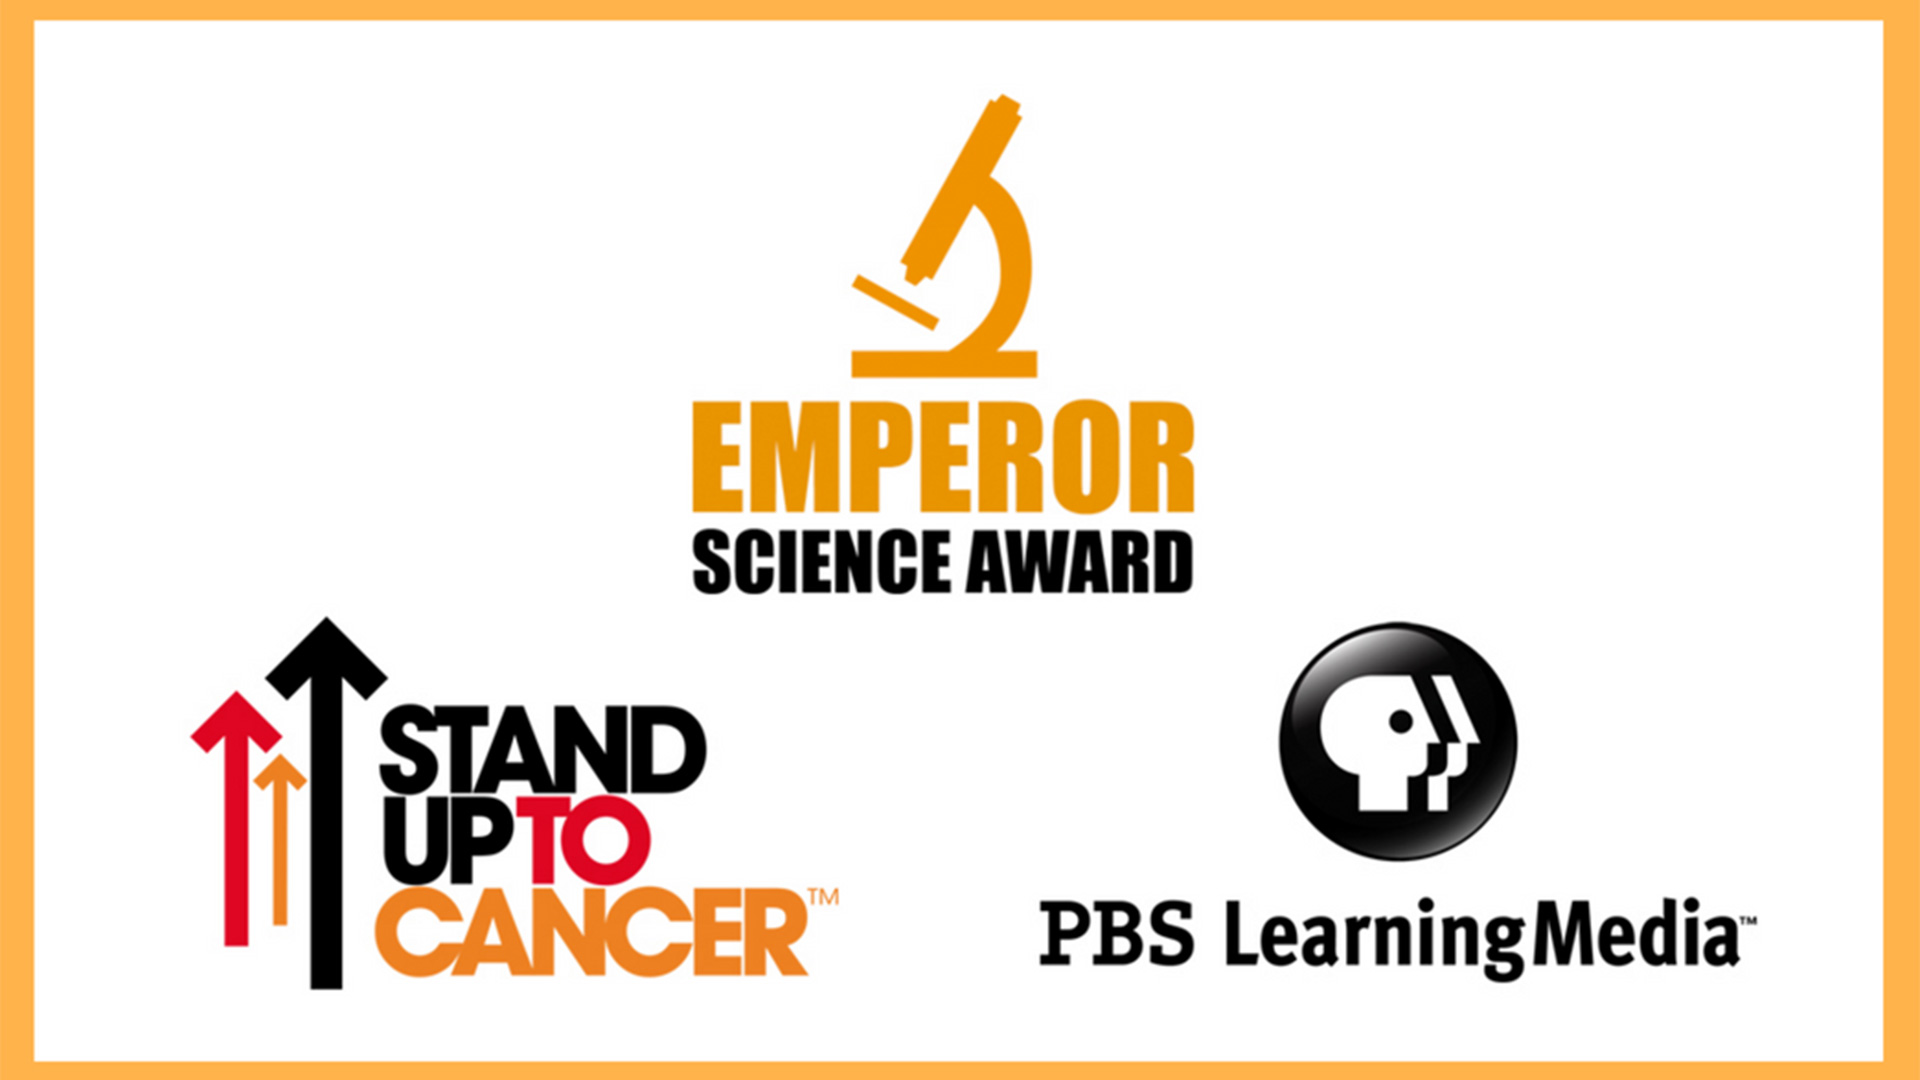 Emperor Science Award Sponsors